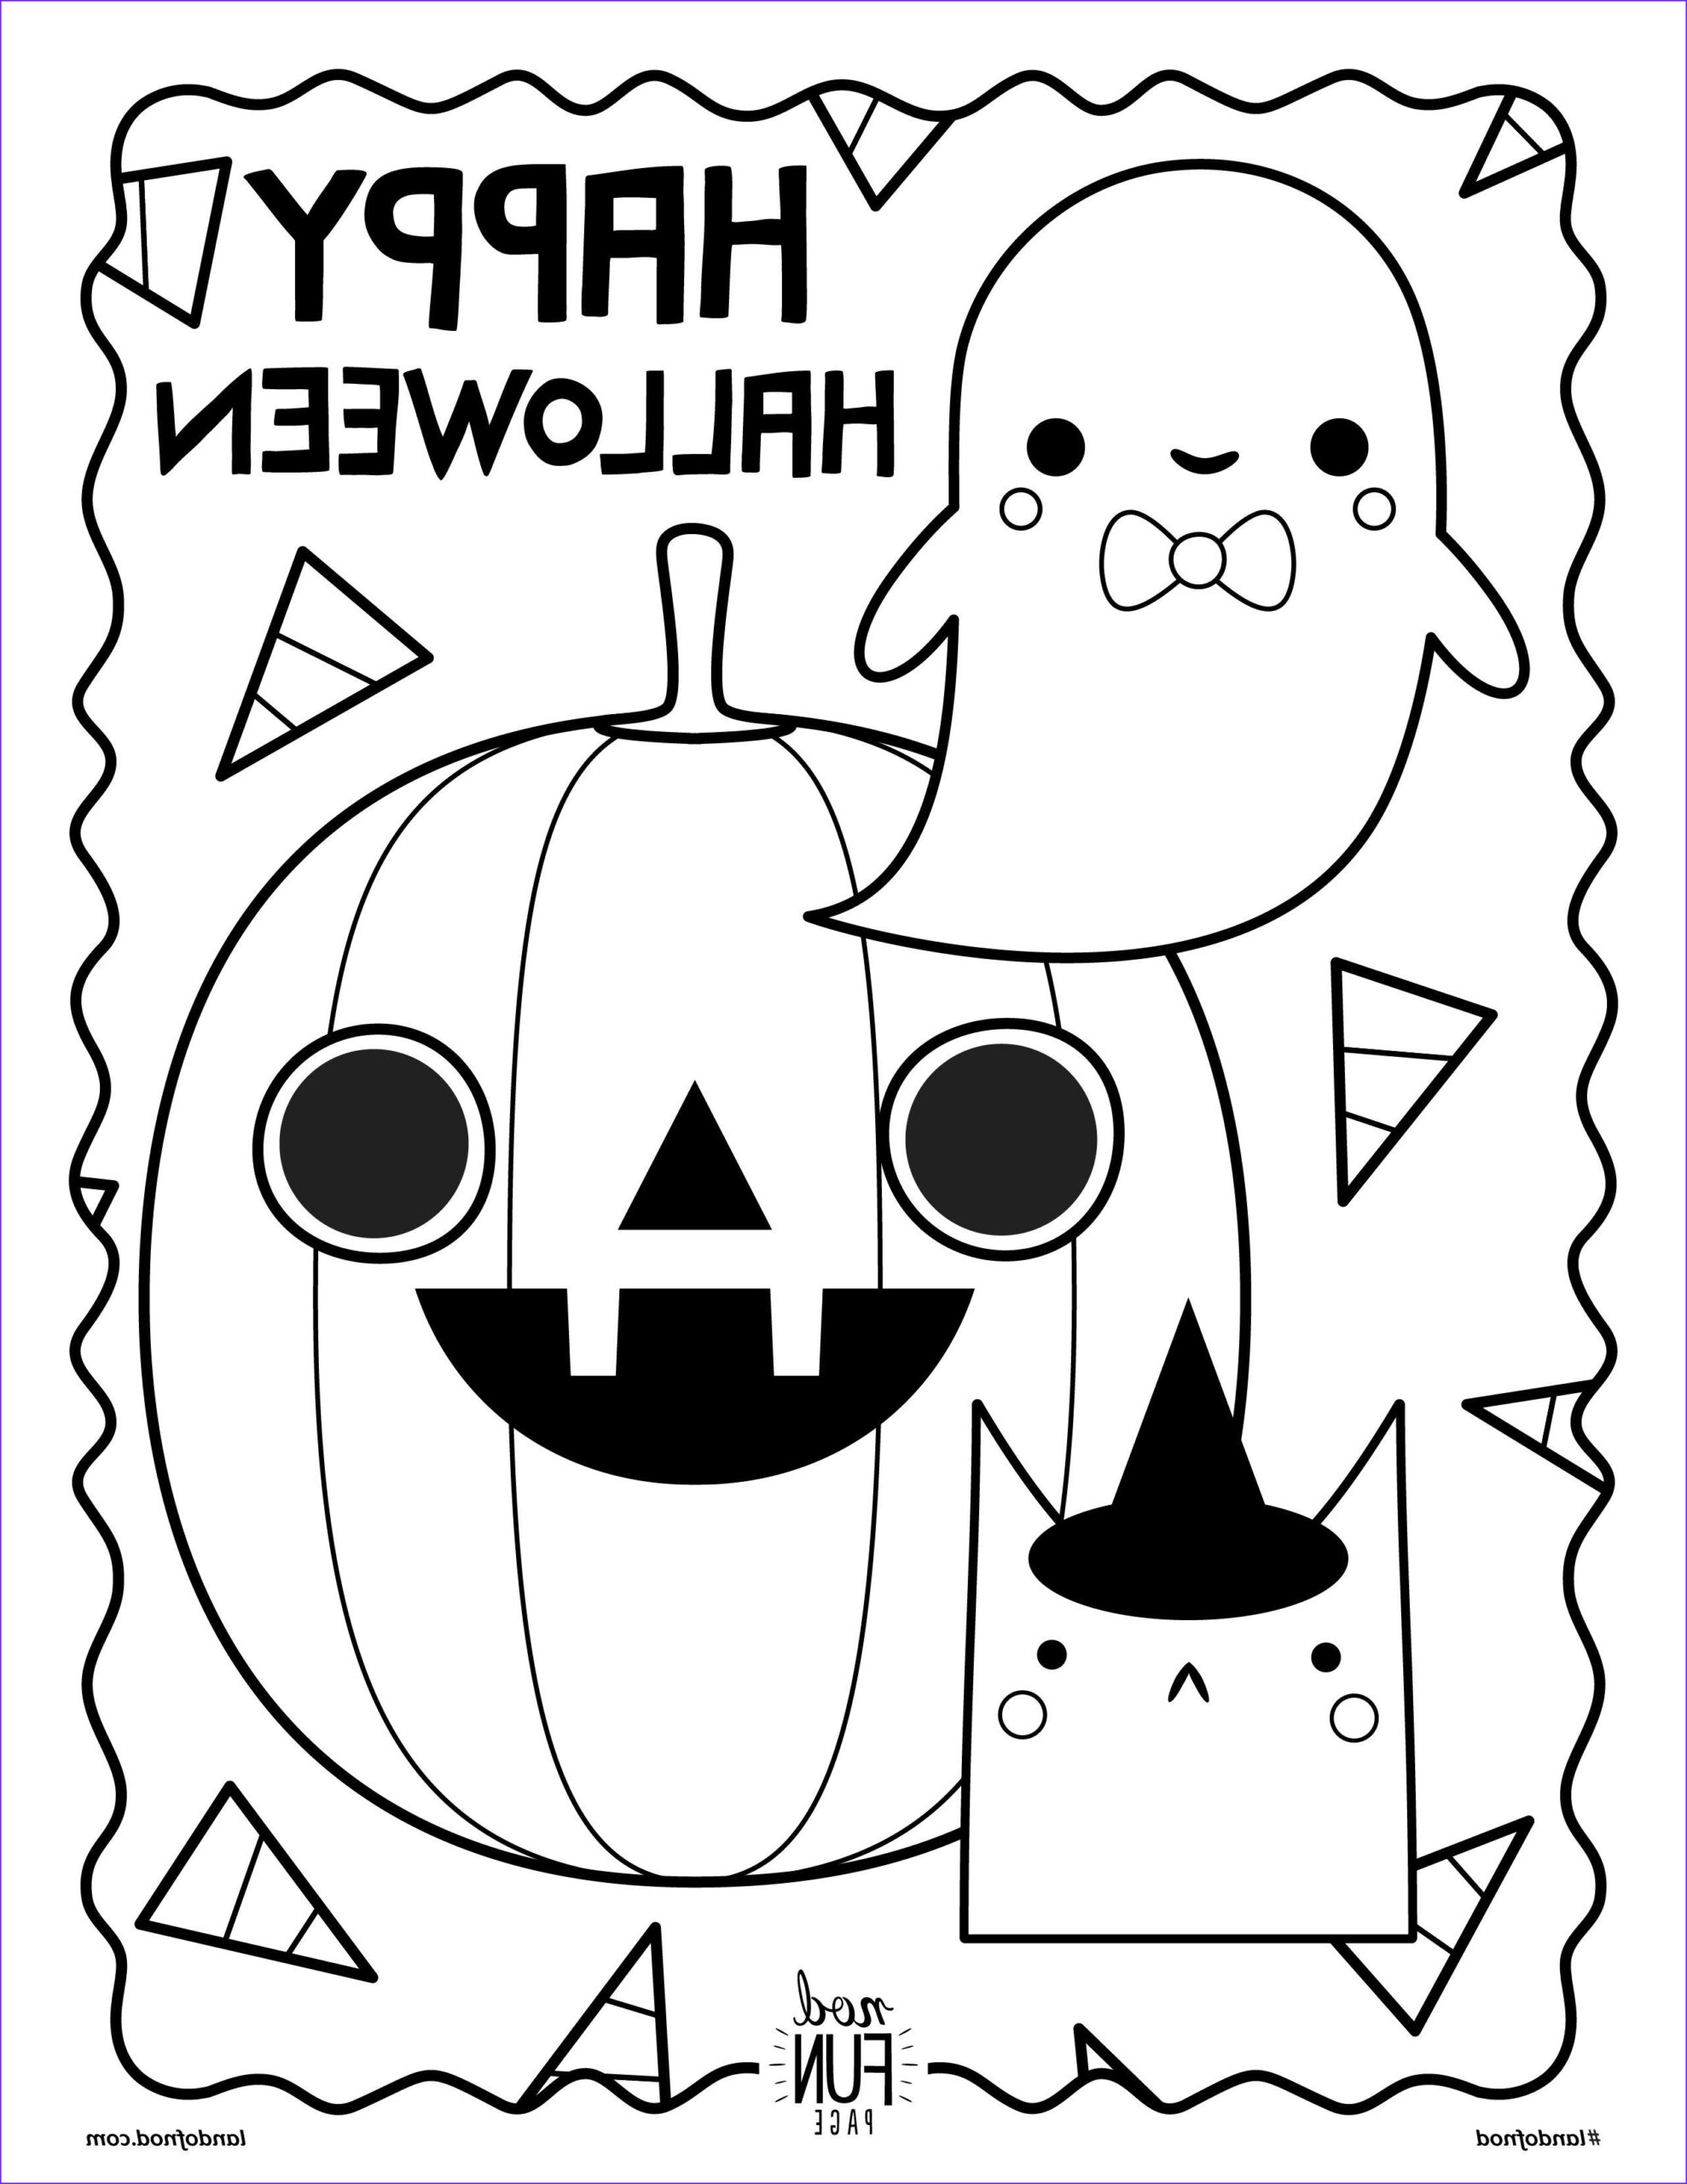 Fun Halloween Coloring Pages Cool Image Free Printable Halloween Coloring Page